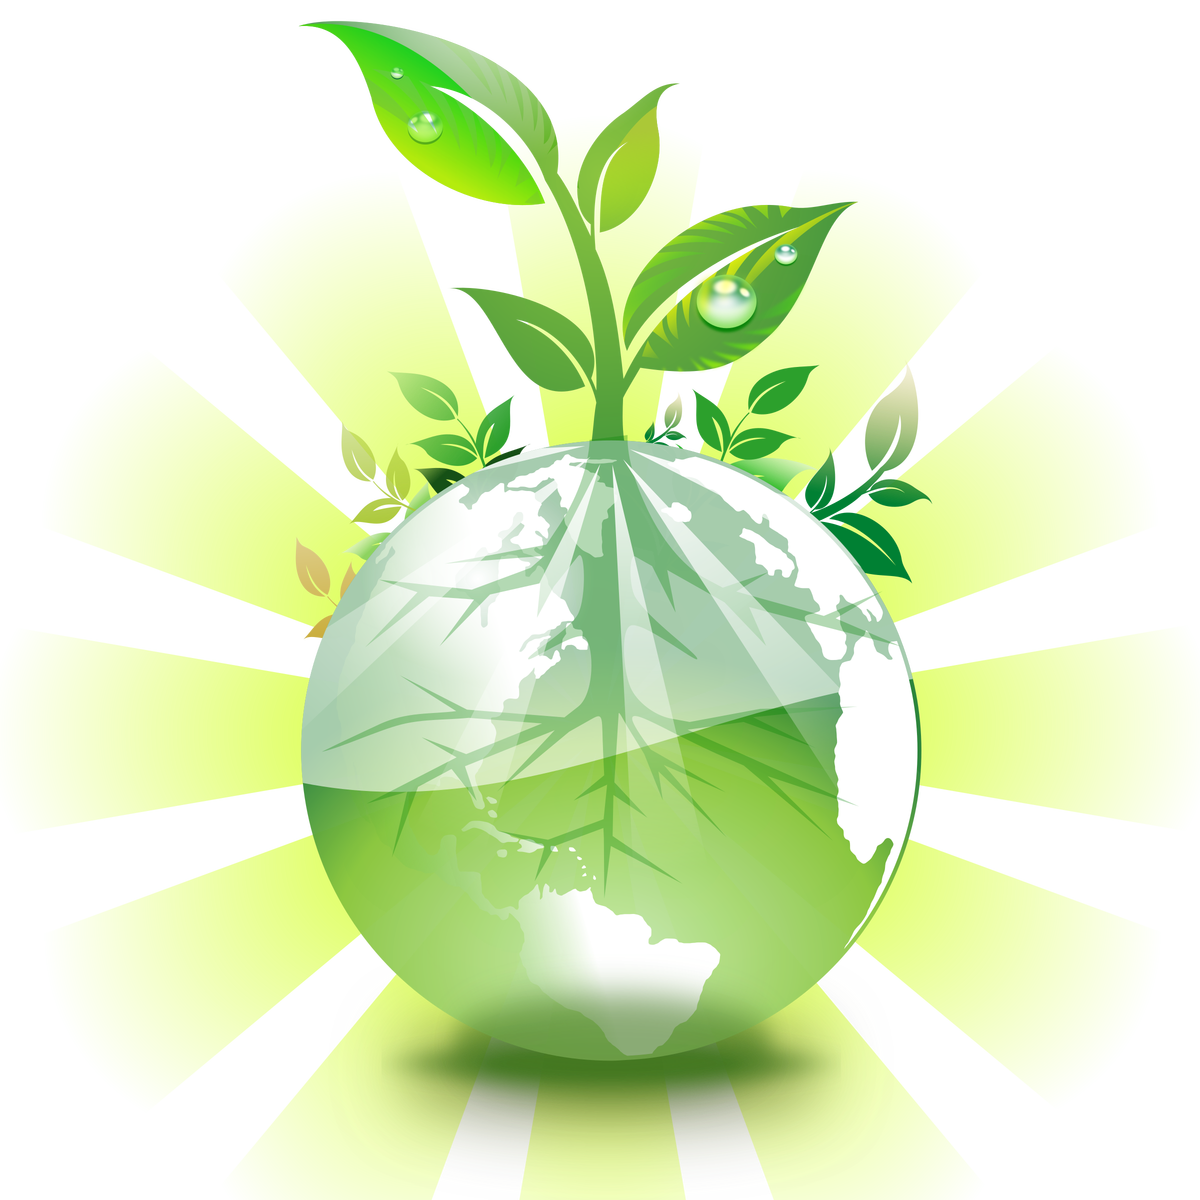 Environment clipart environment word. Love recognizes no barriers